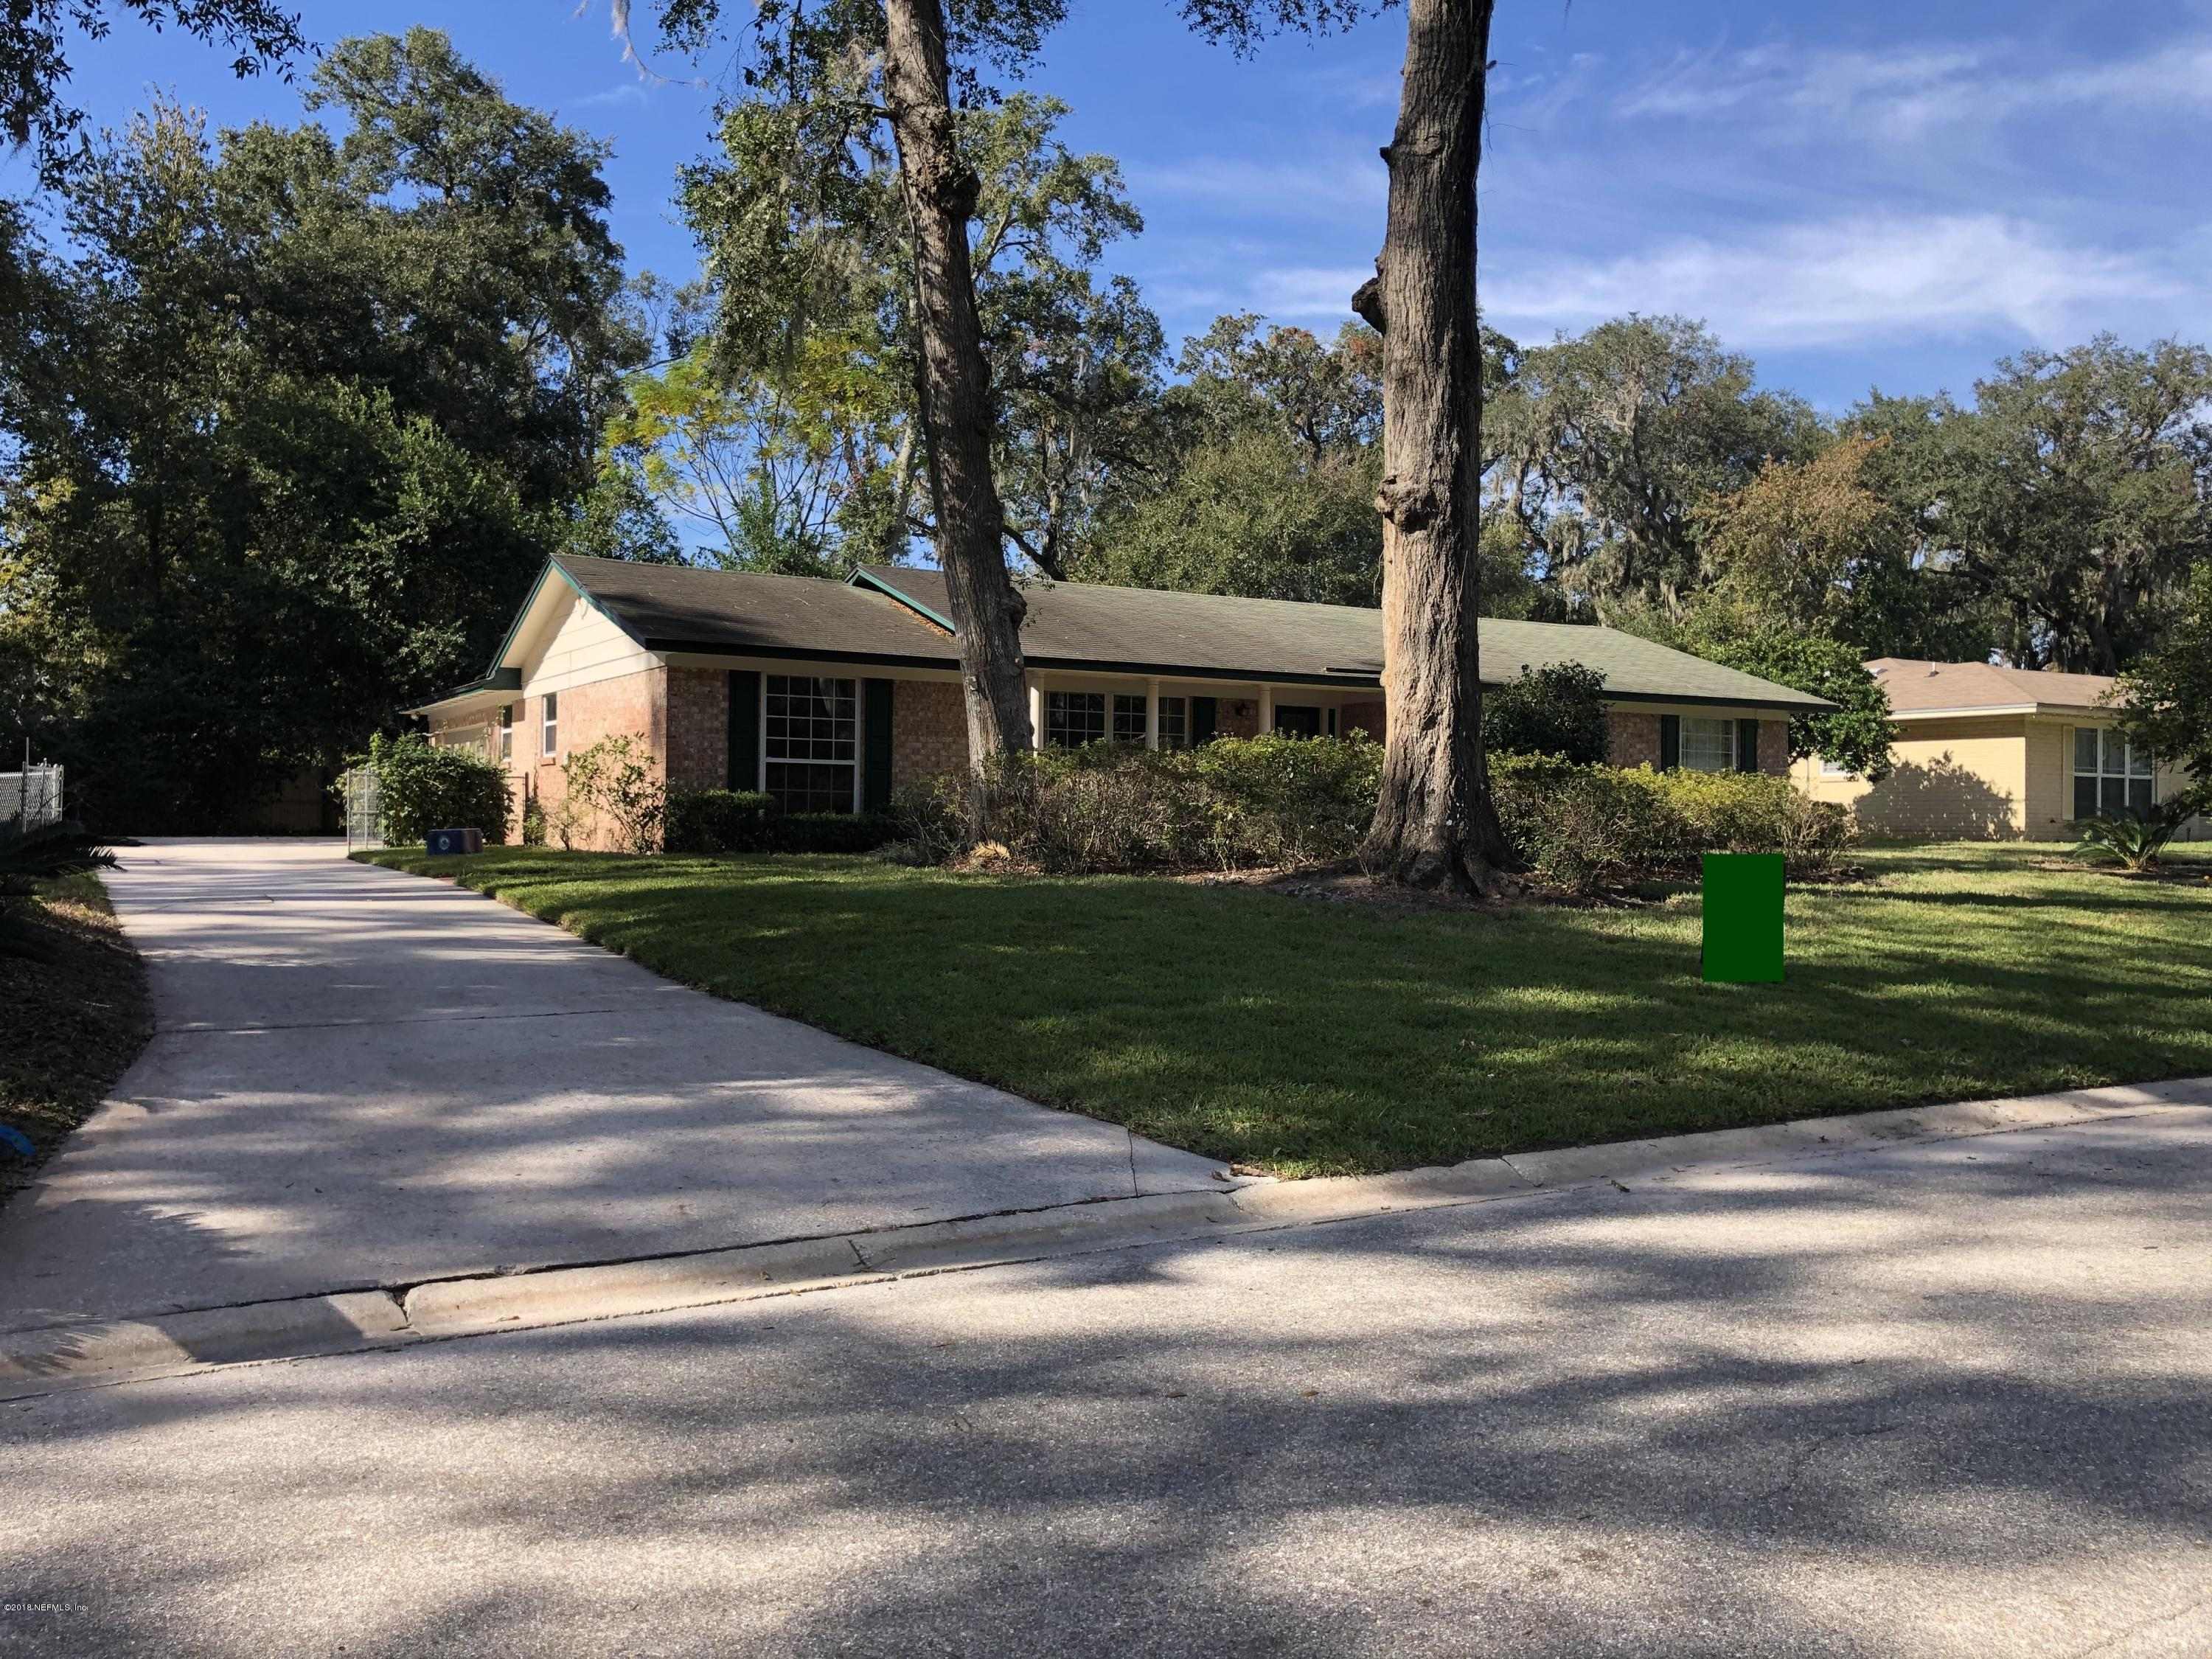 2832 PACES FERRY, ORANGE PARK, FLORIDA 32073, 4 Bedrooms Bedrooms, ,2 BathroomsBathrooms,Residential - single family,For sale,PACES FERRY,964223